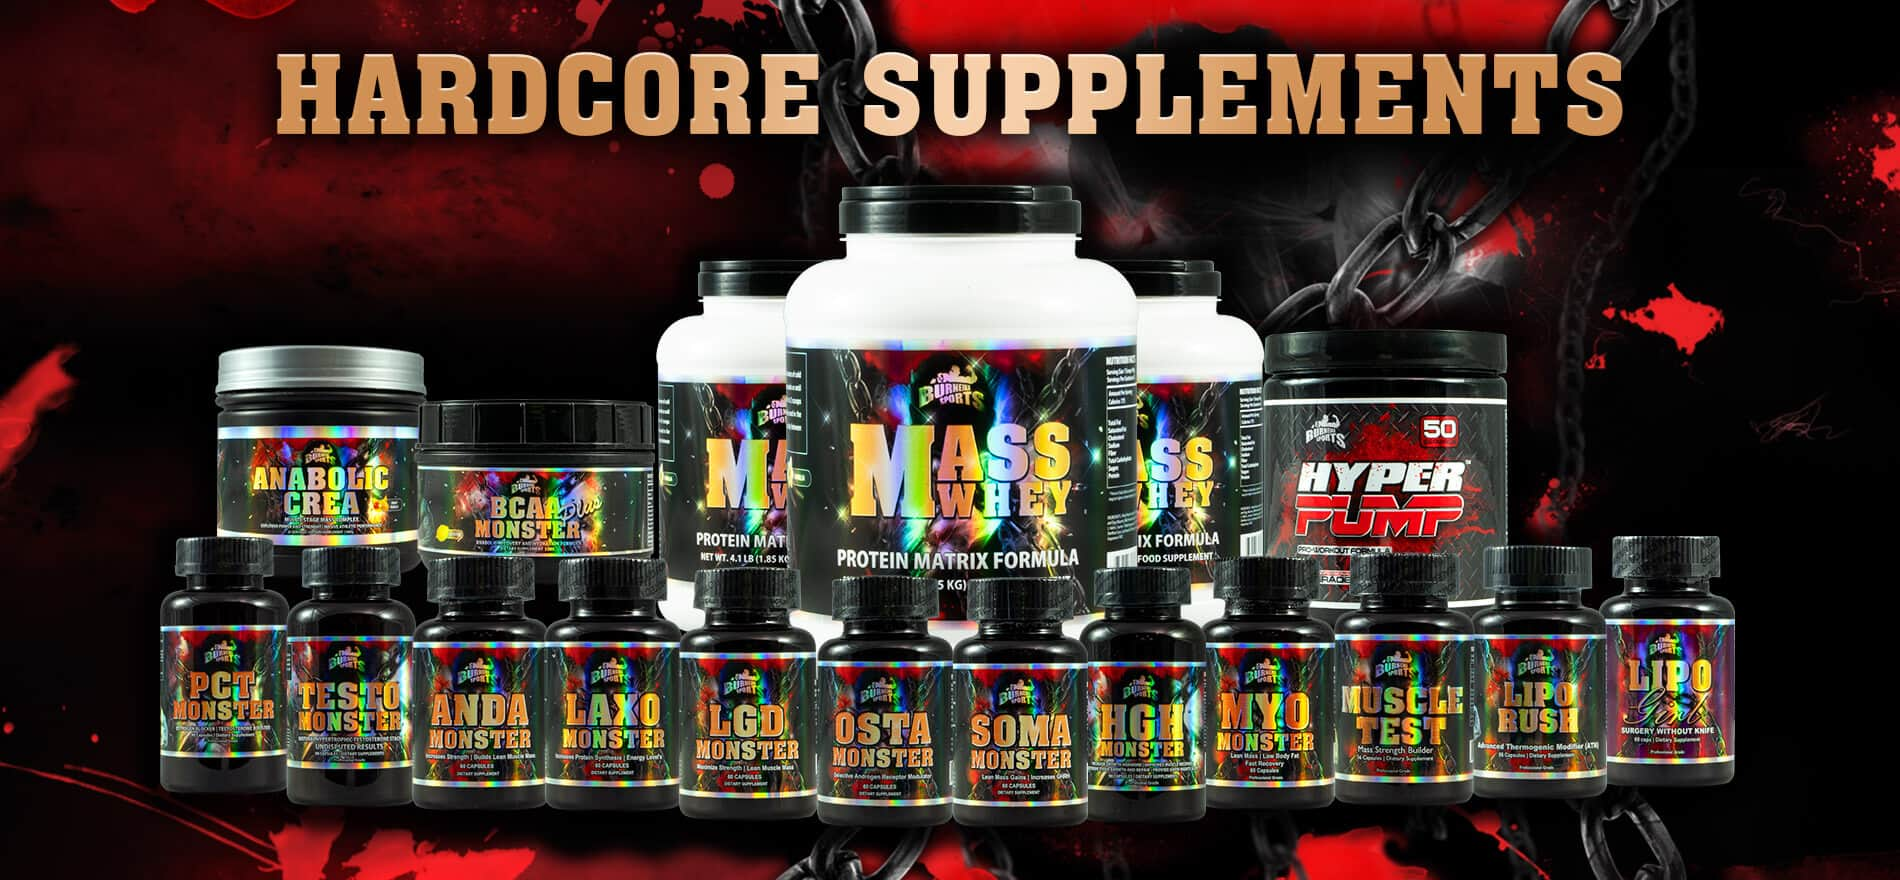 Hardcore Supplements